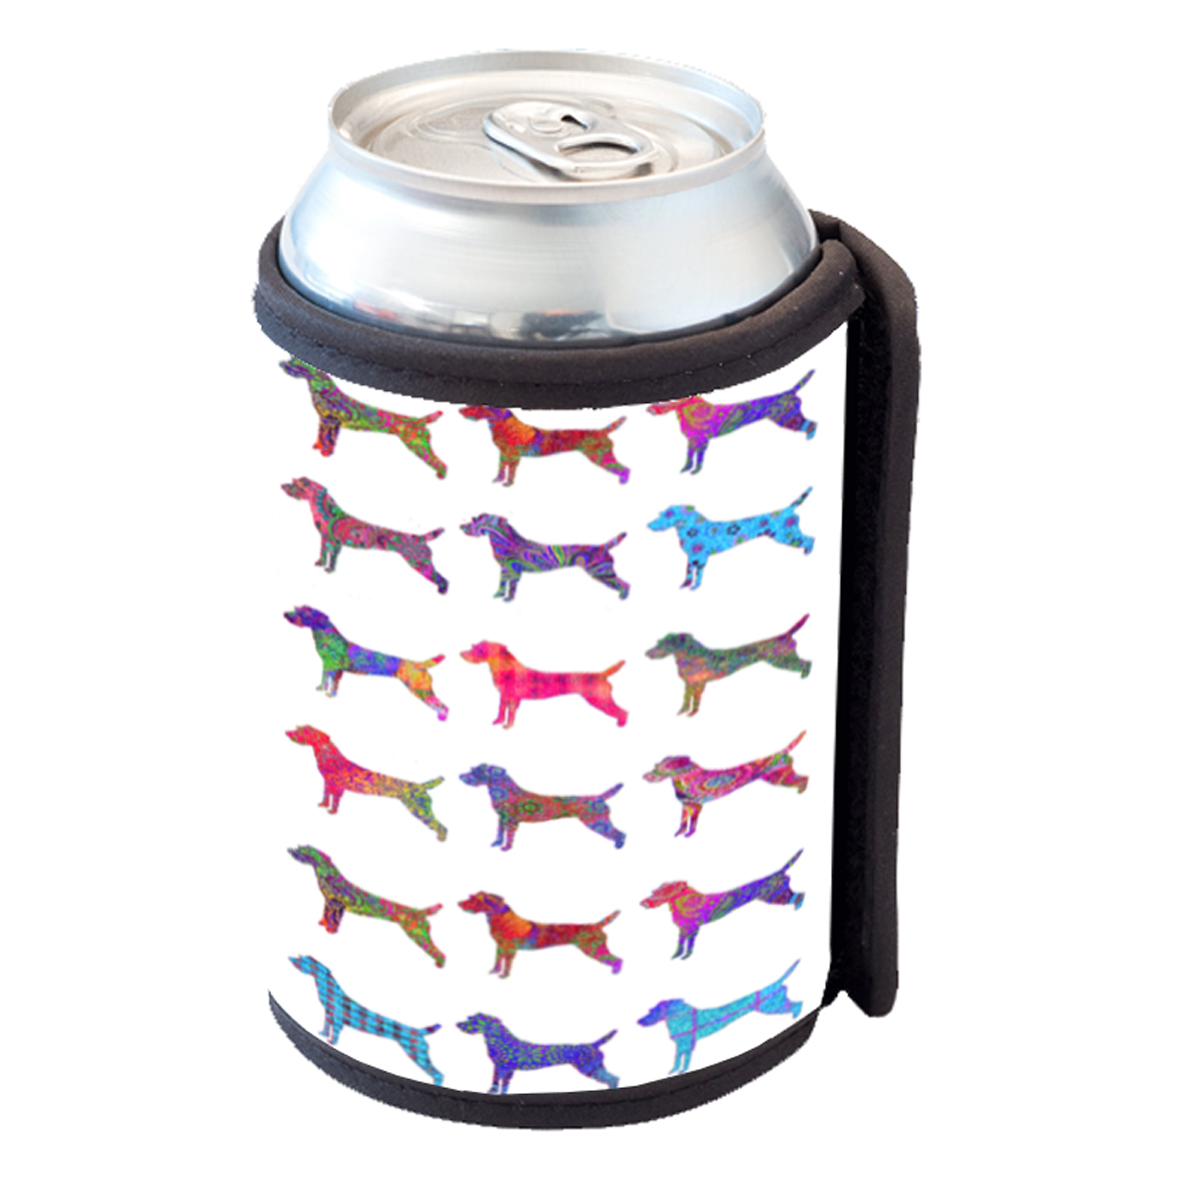 KuzmarK Insulated Drink Can Cooler Hugger - Jack Russell Dog